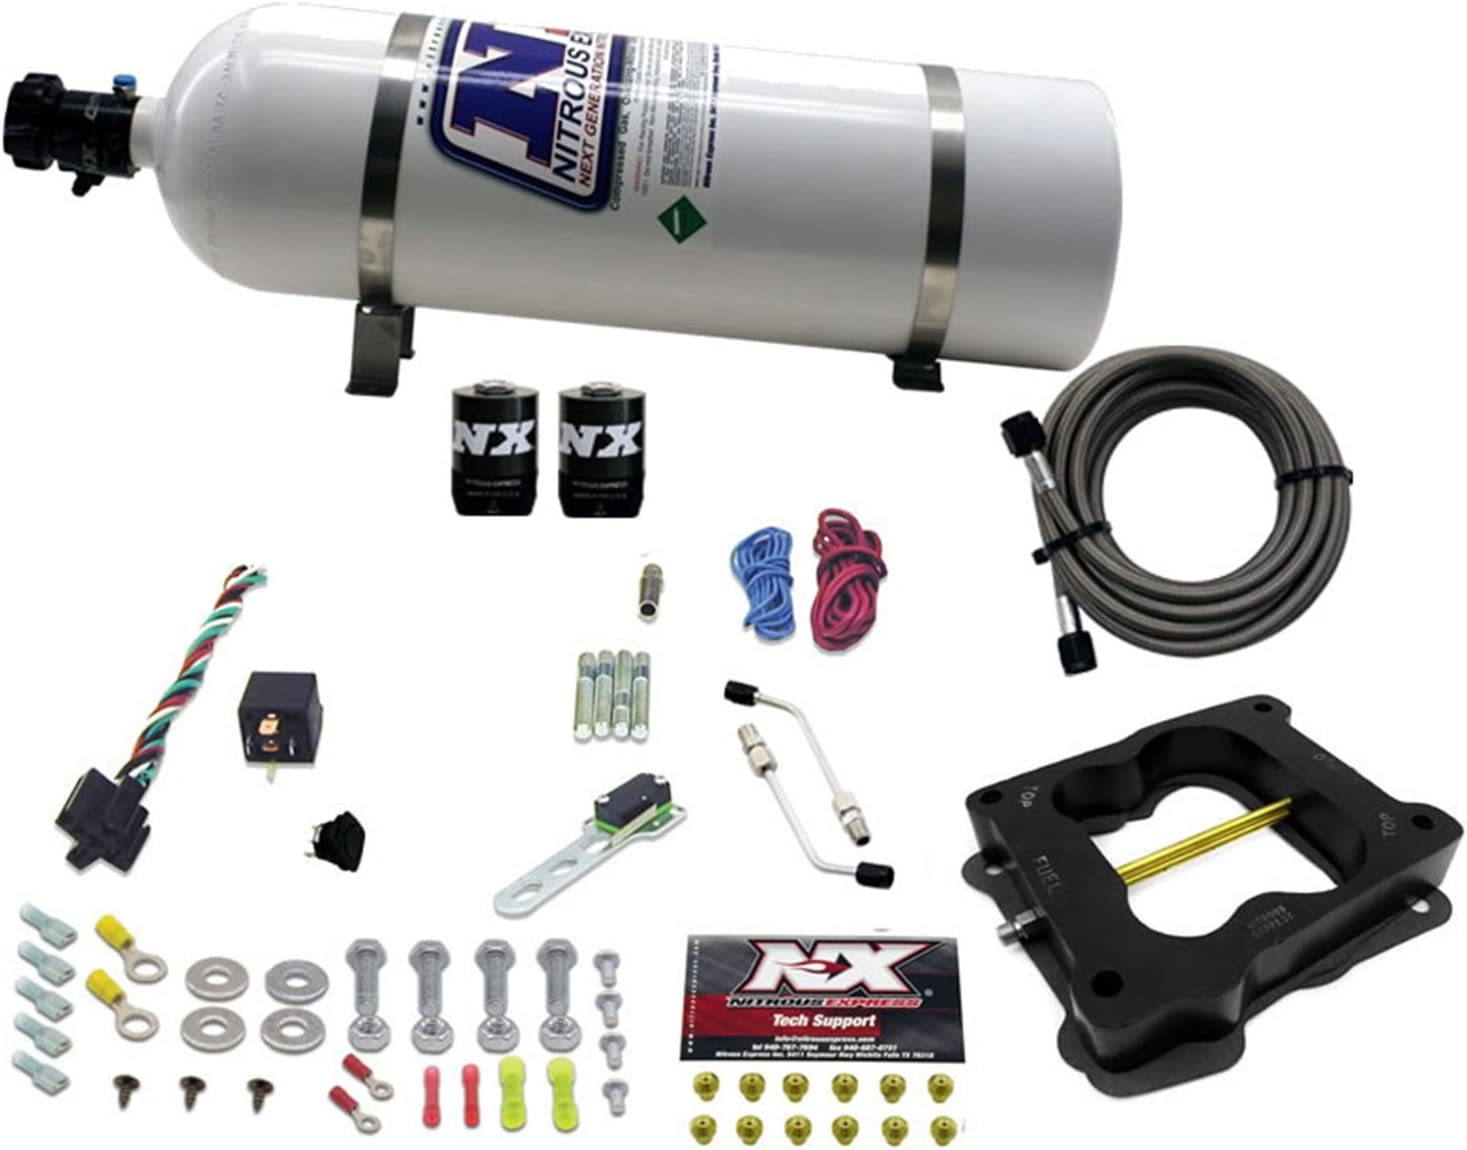 Nitrous Express 30080-15 50-300 HP Bore Q-Jet Spread Opening large release sale Topics on TV Conv Holley